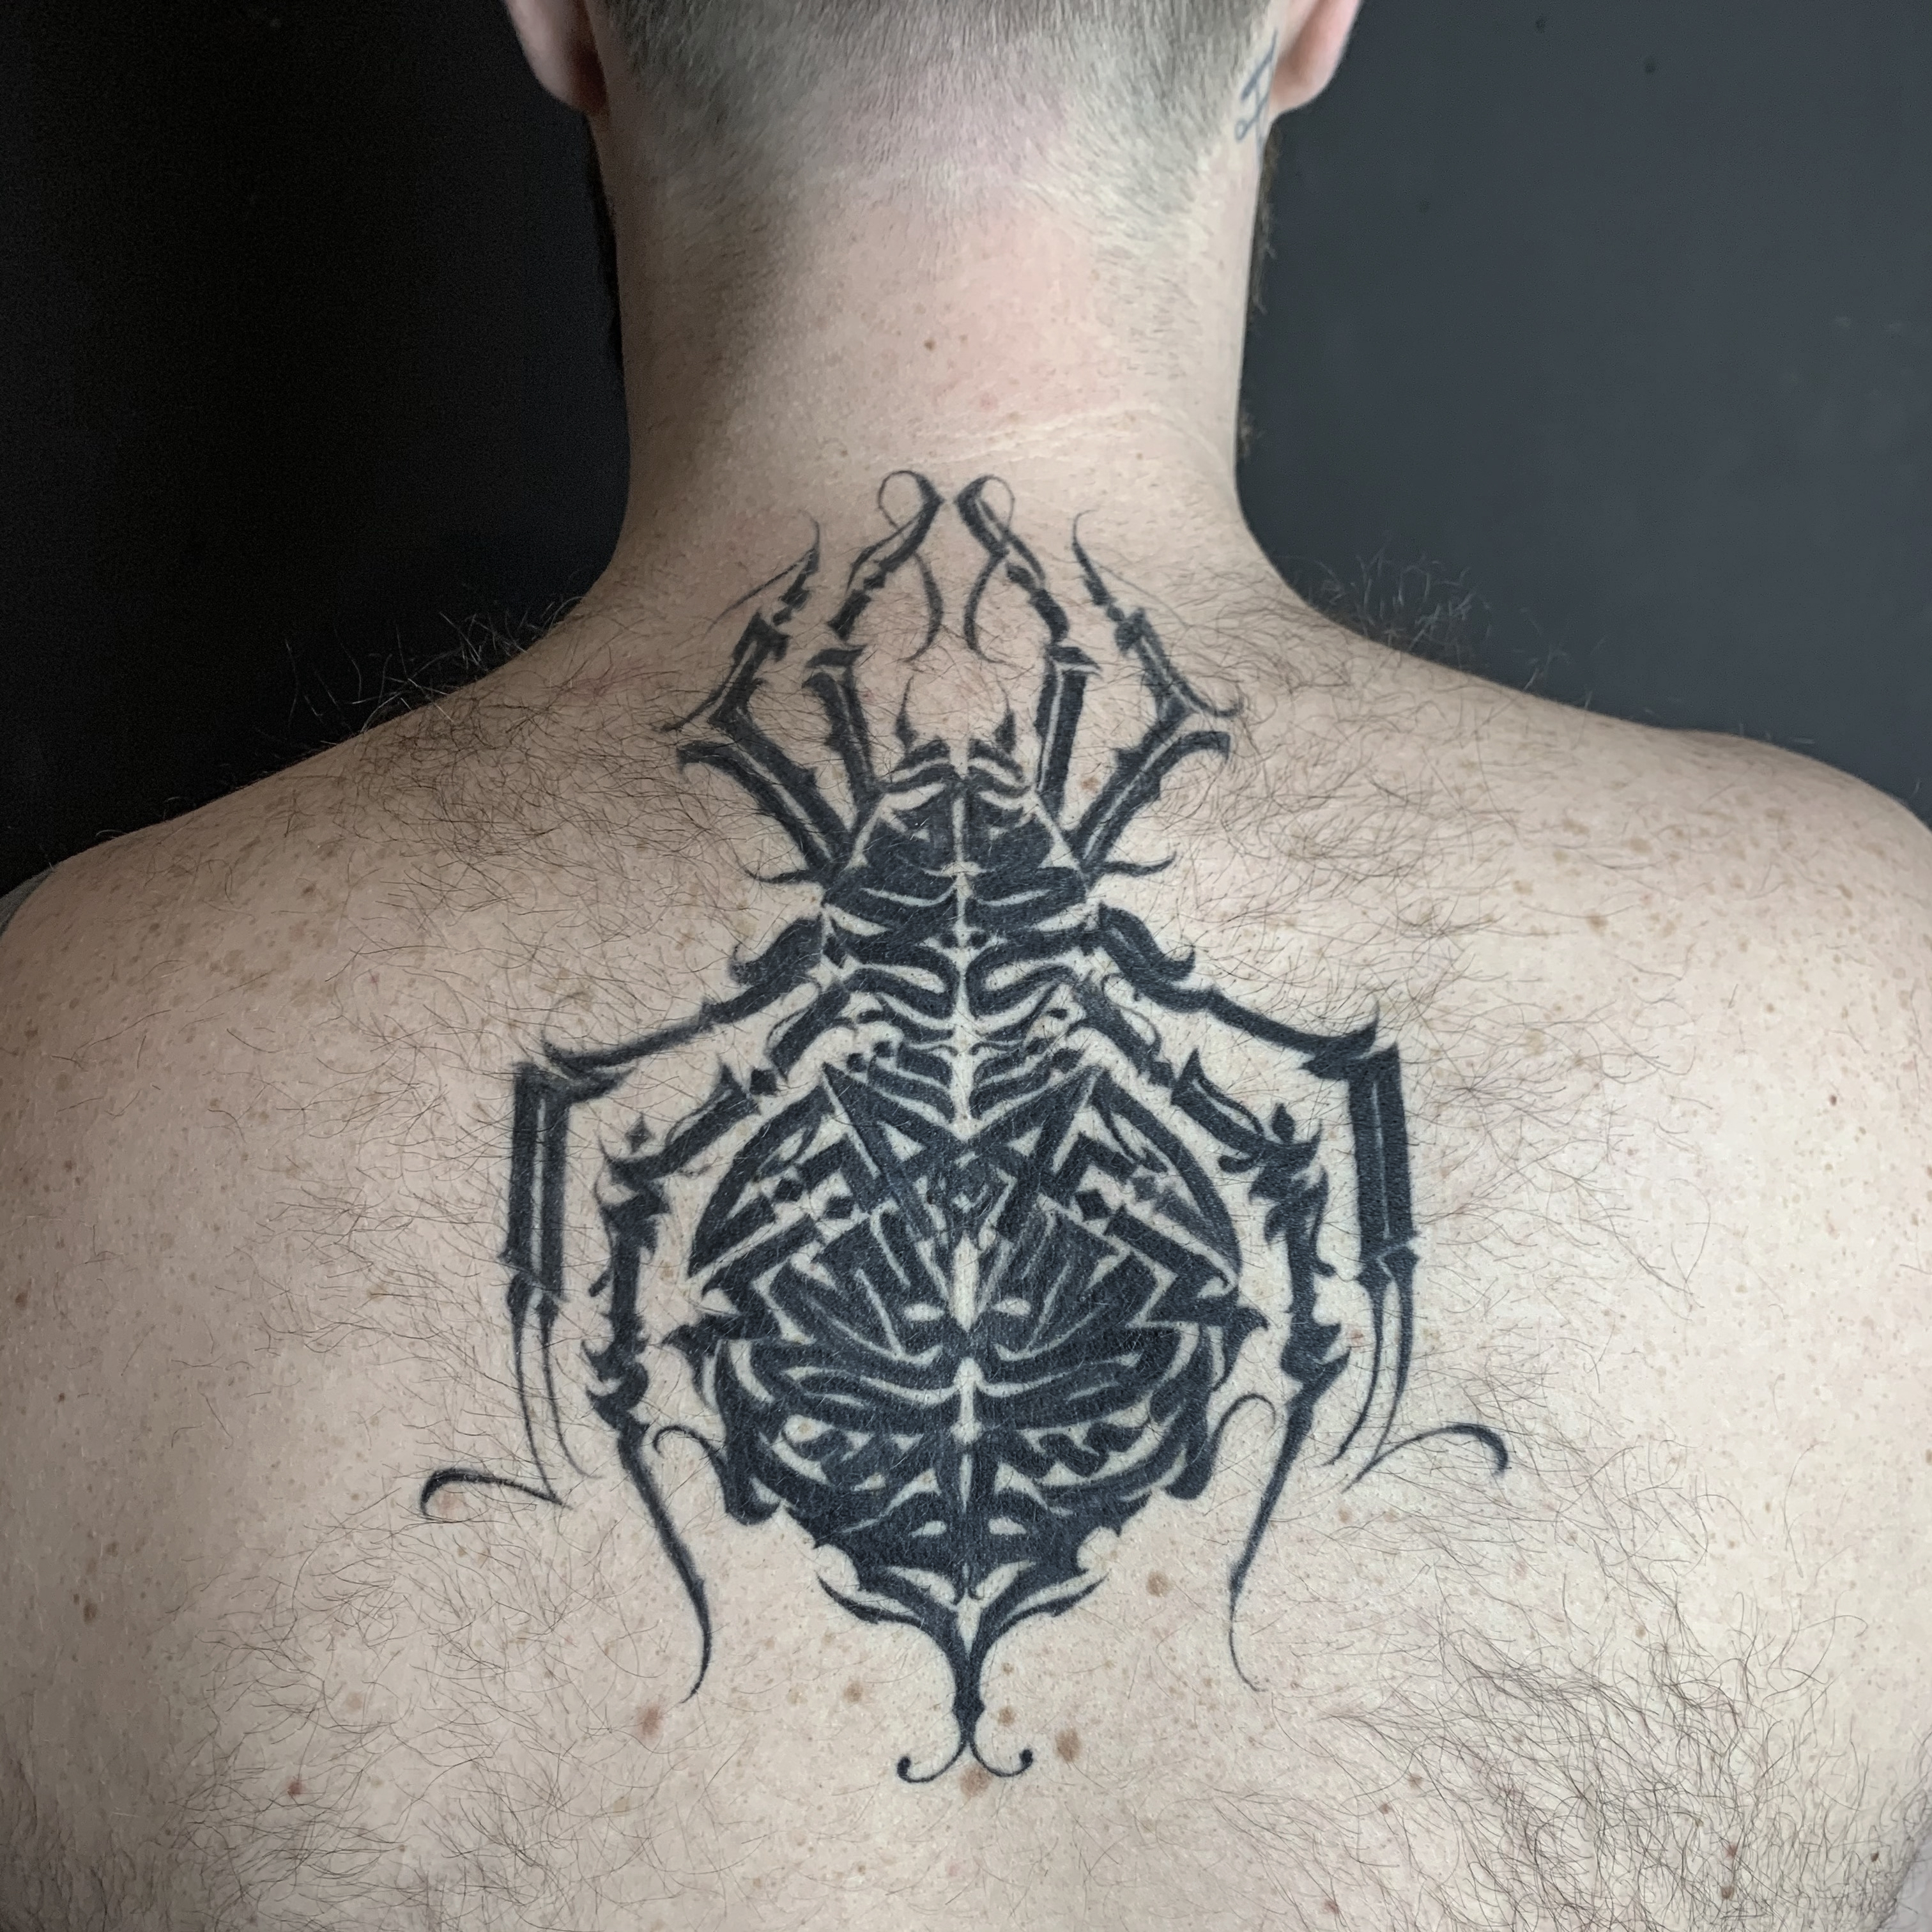 Inksearch tattoo Morphography